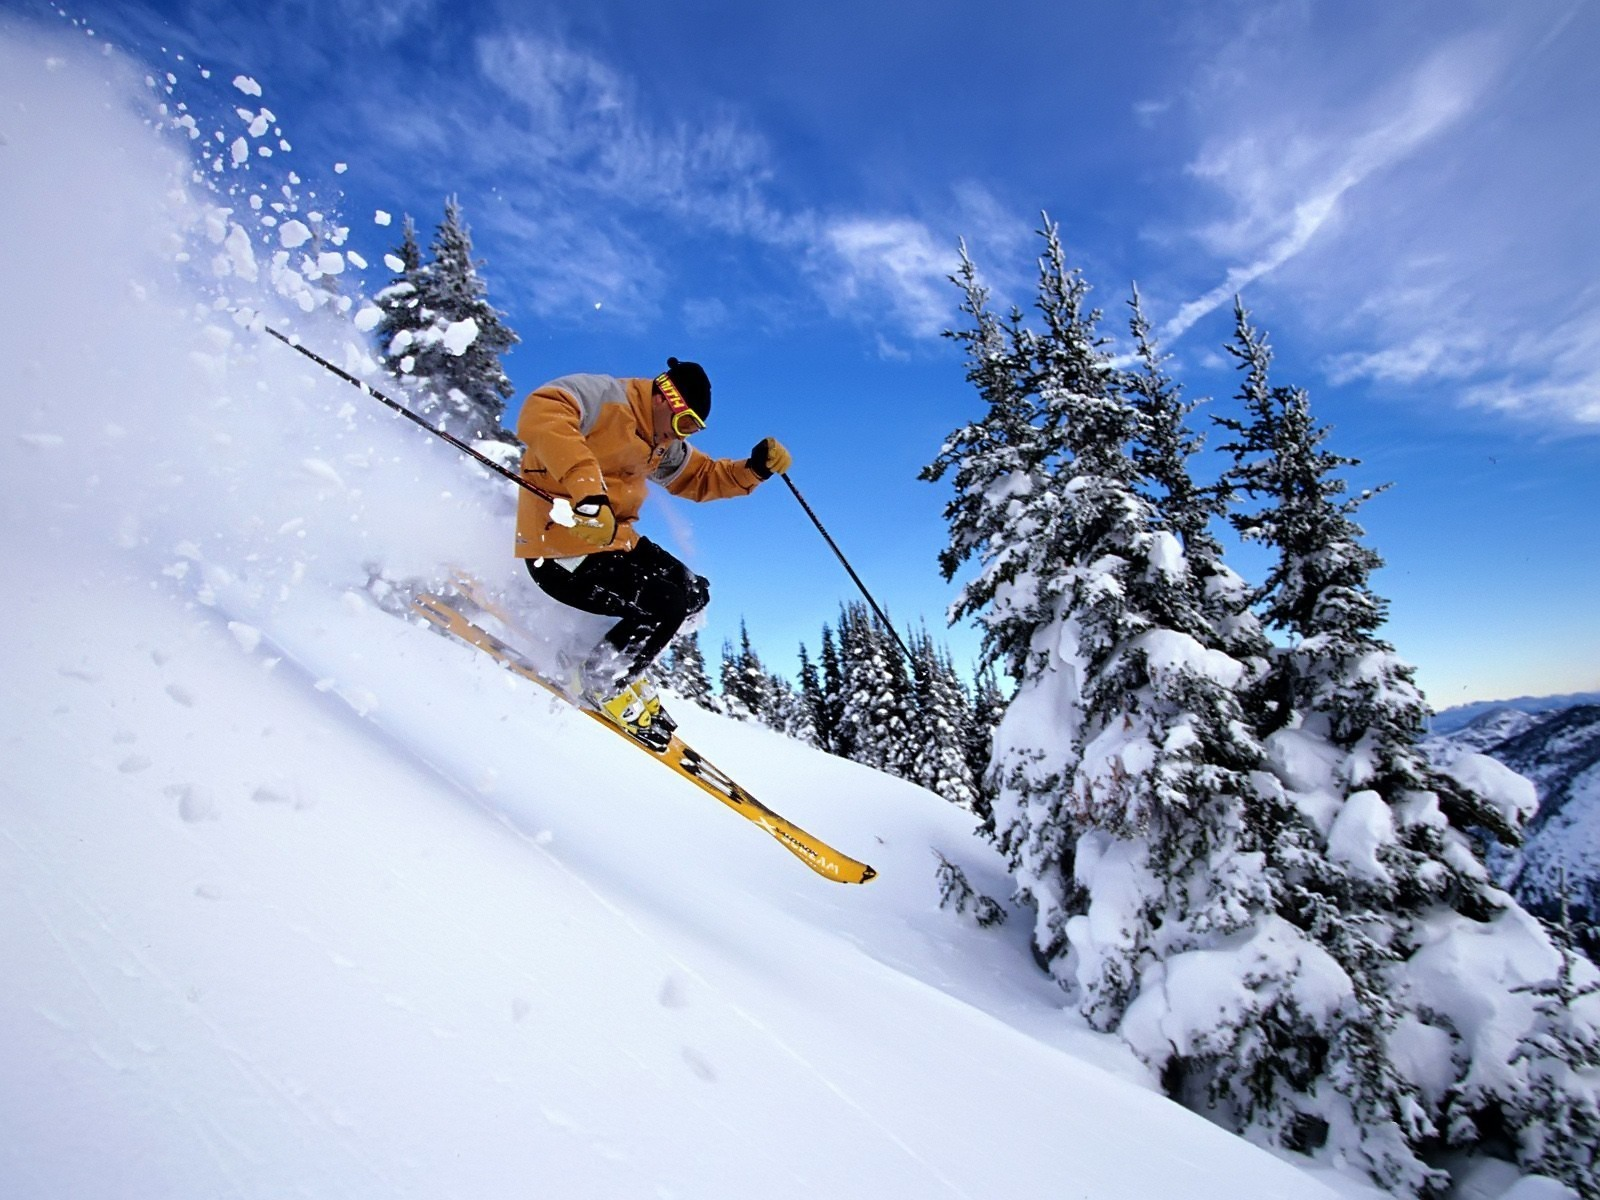 Downhill skier in the mountains